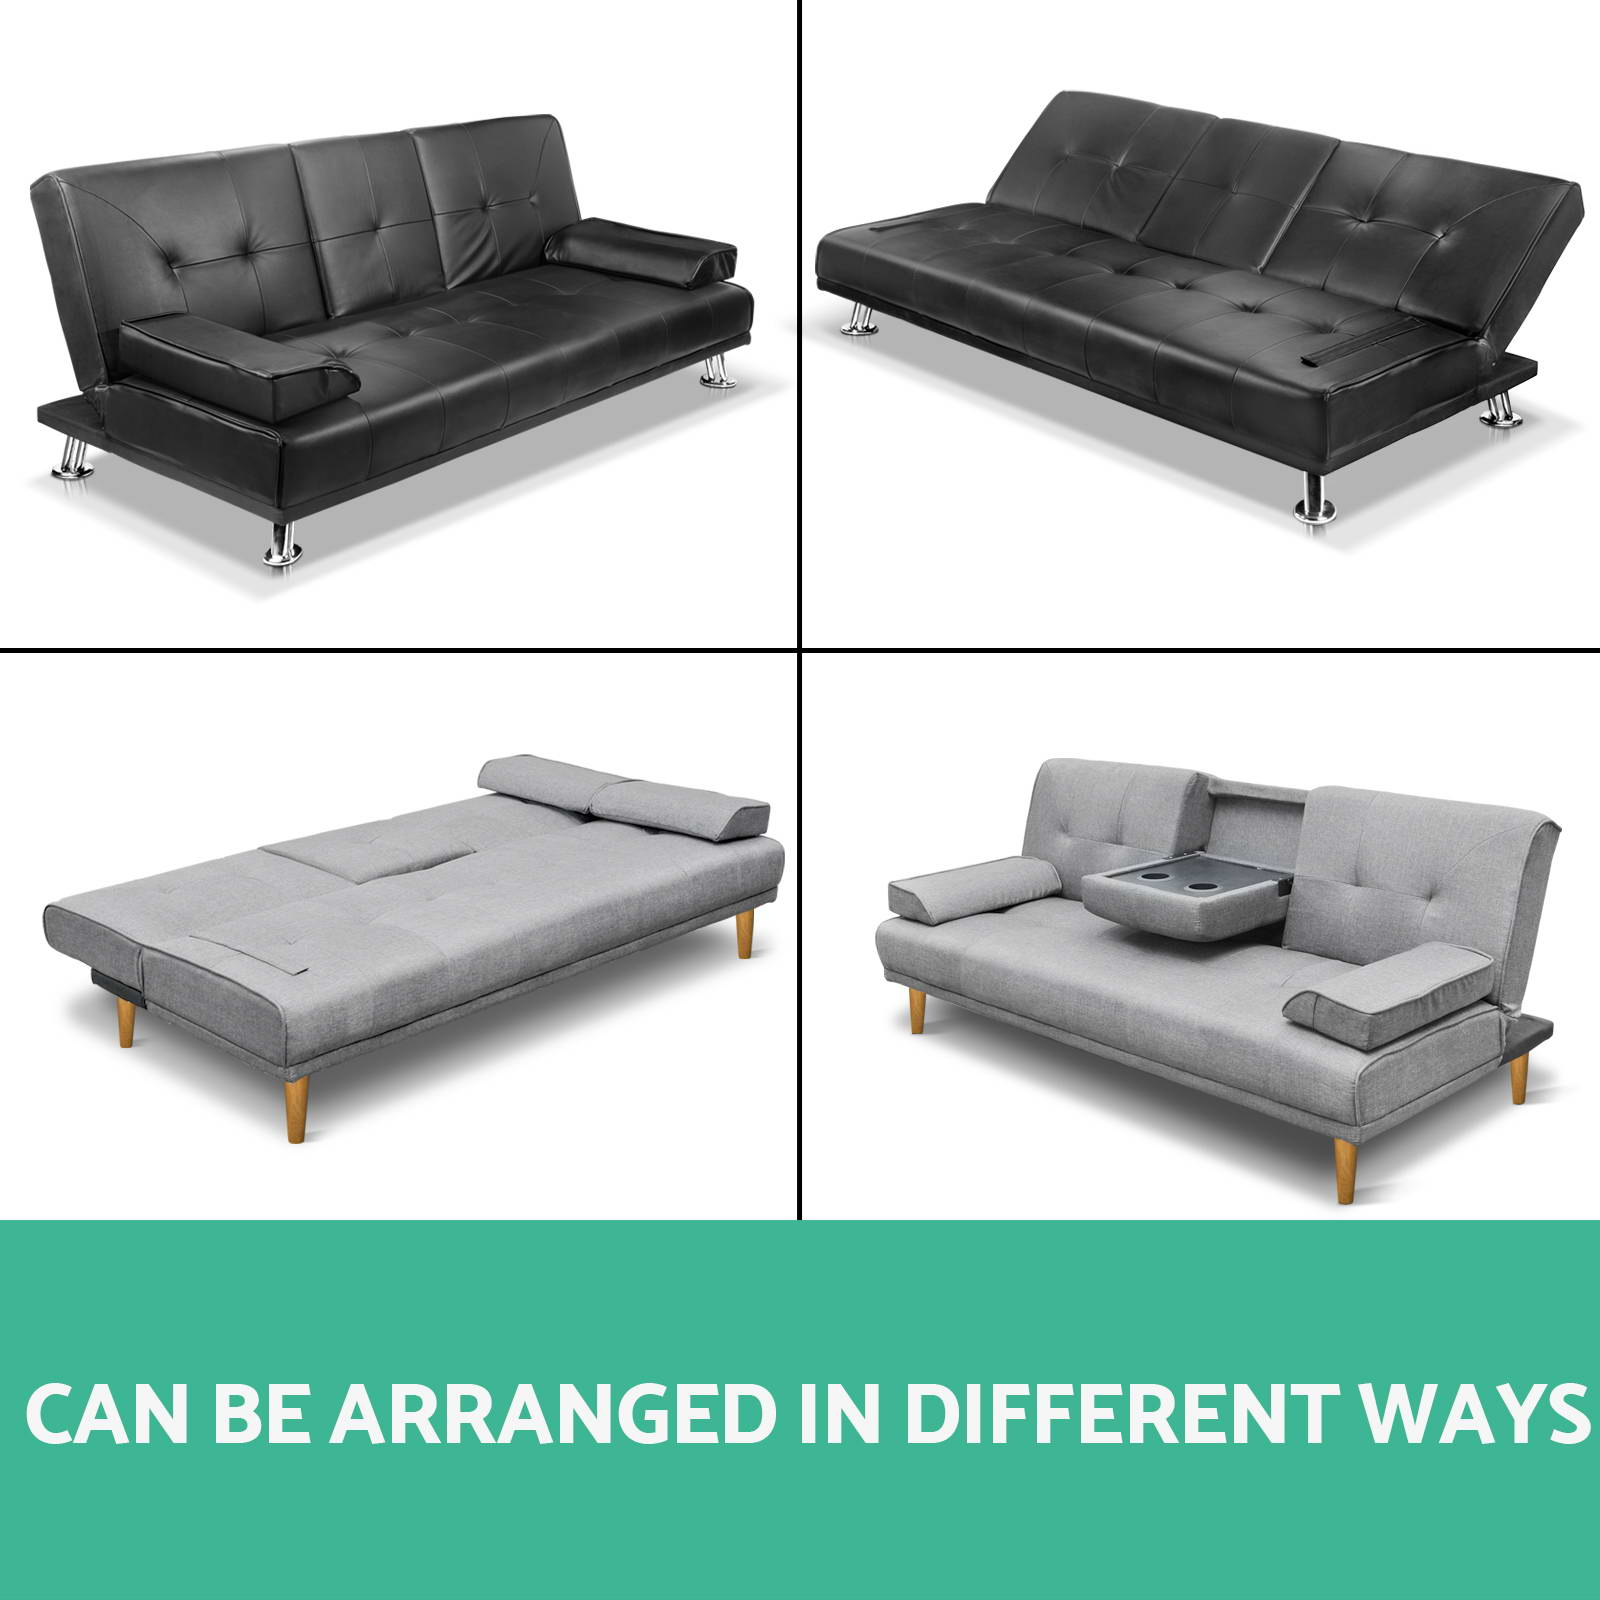 durdham fabric chaise longue sofa bed corner sofas furniture village linen pu leather couch outdoor lounges futon